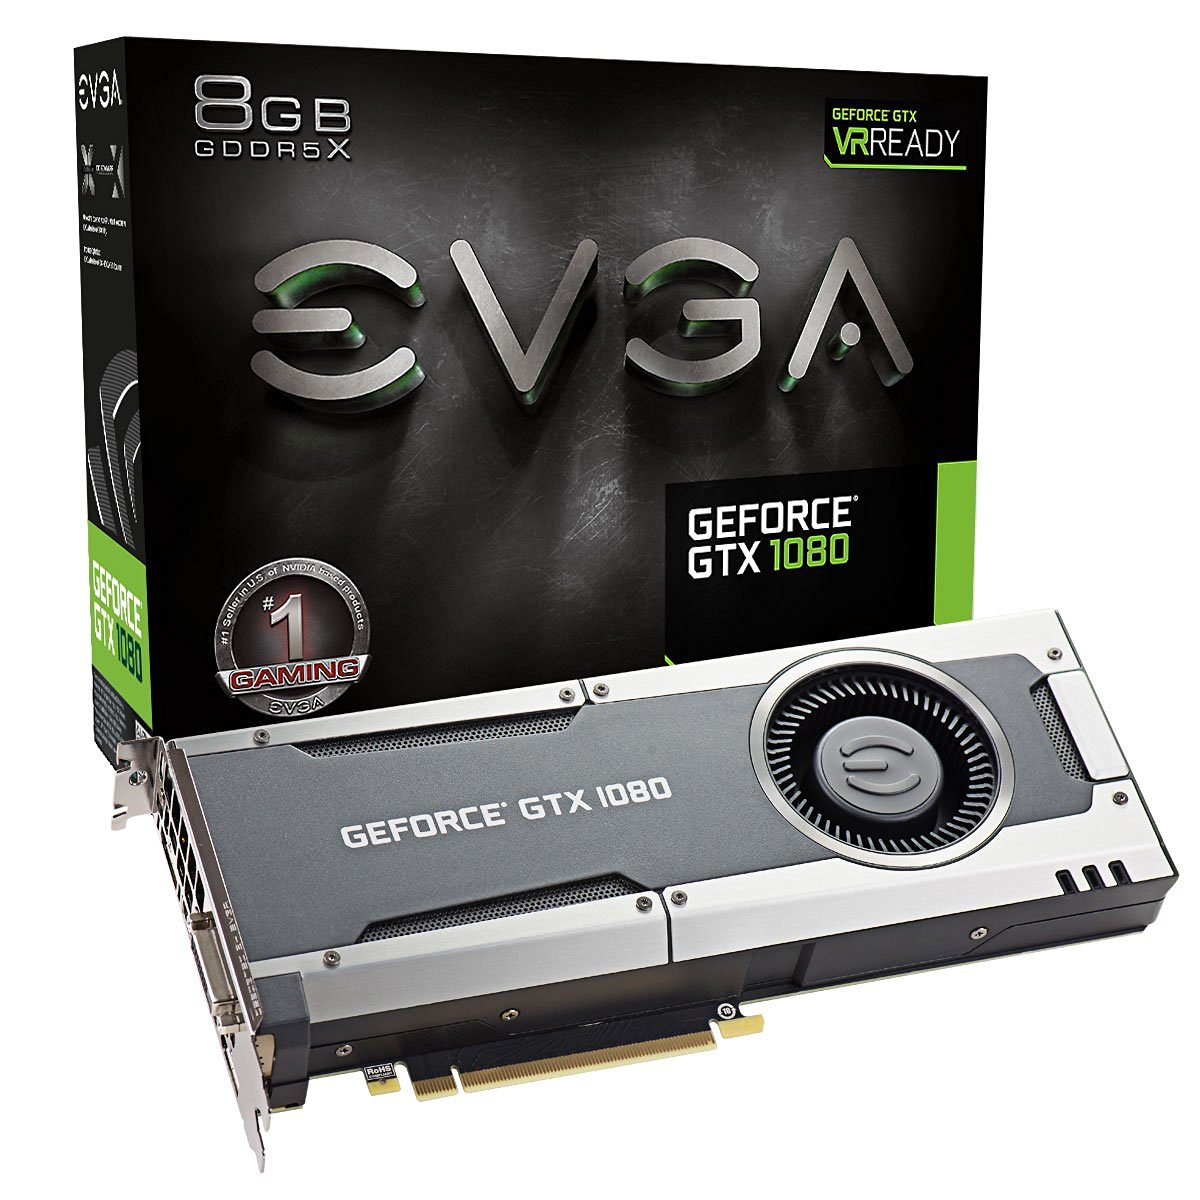 EVGA GeForce GTX 1080 GAMING 8GB VR Ready Graphics Card | 08G-P4-5180-KR